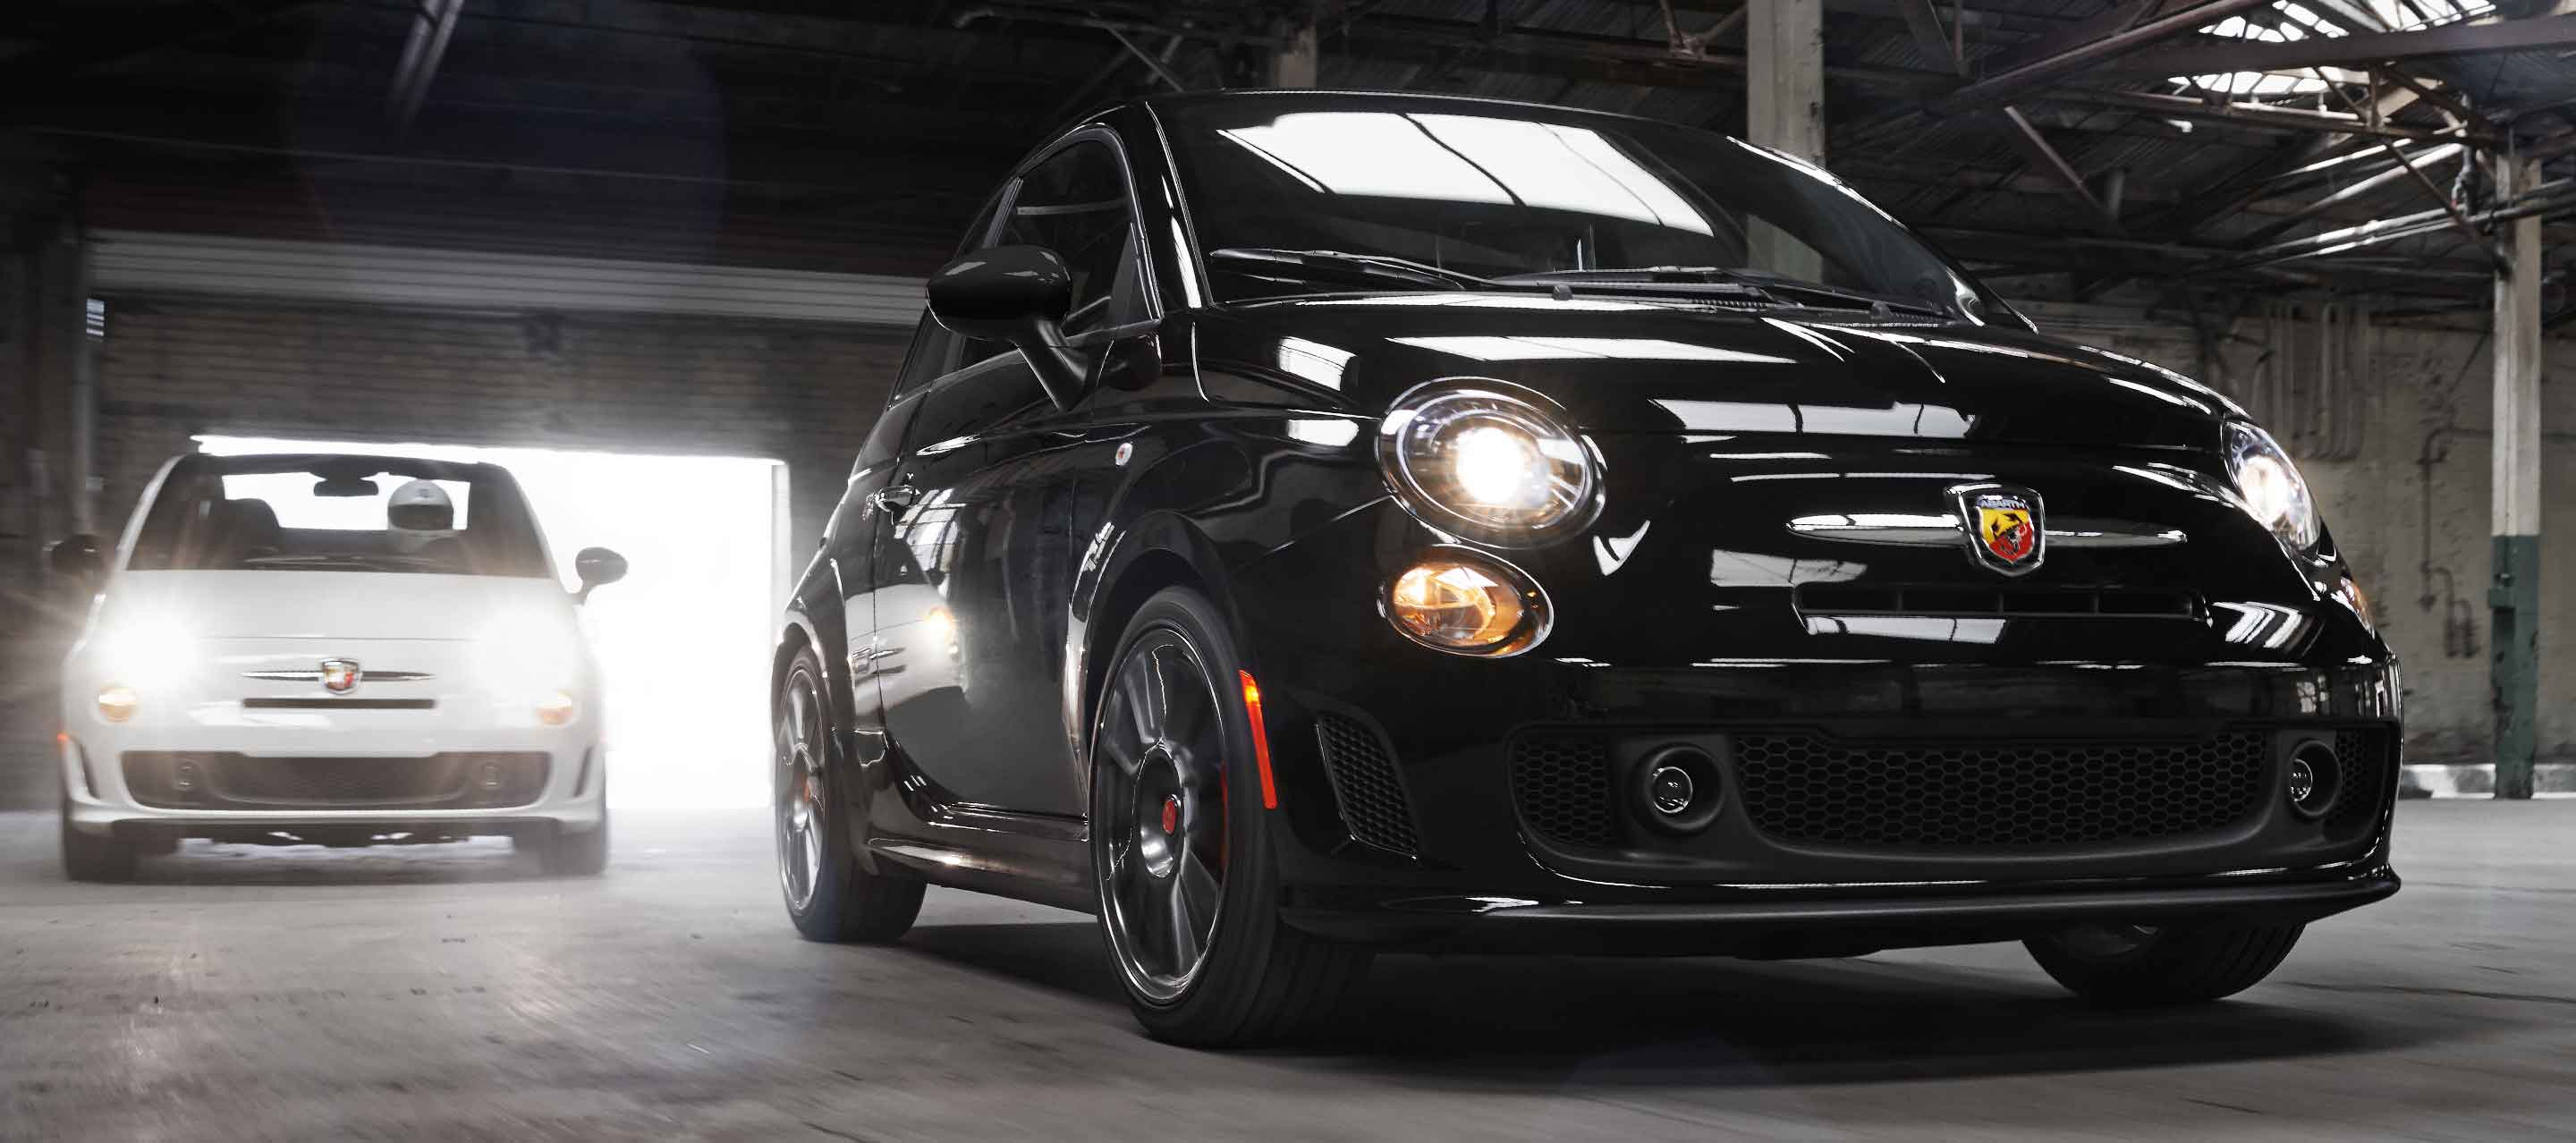 Fiat 500 Discontinued